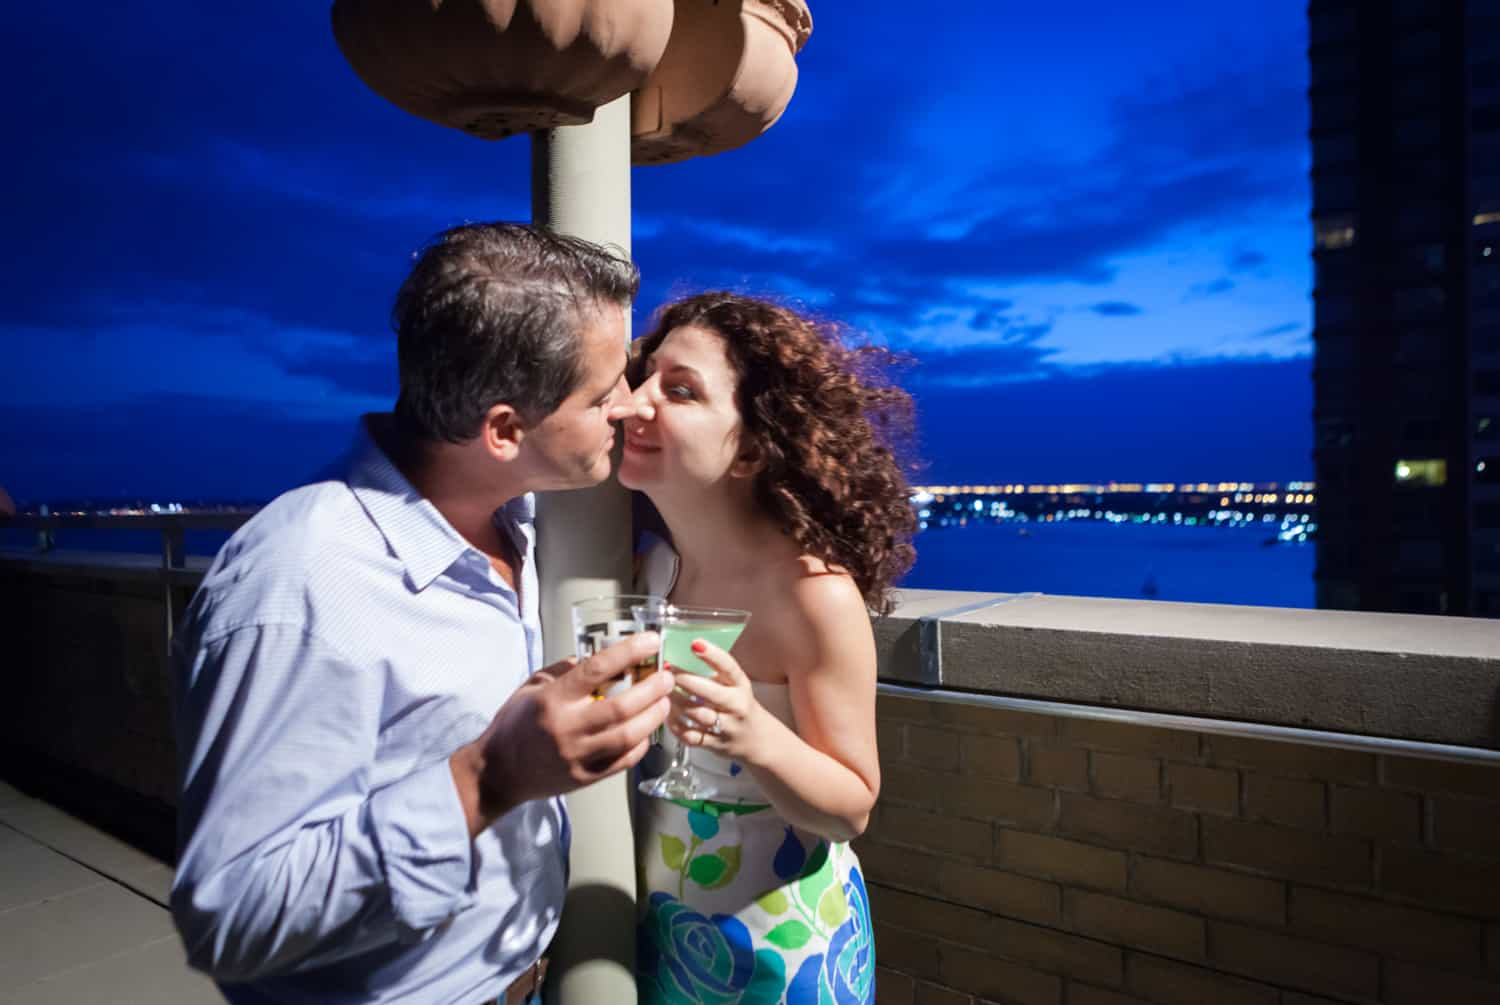 Couple kissing and holding cocktails on rooftop